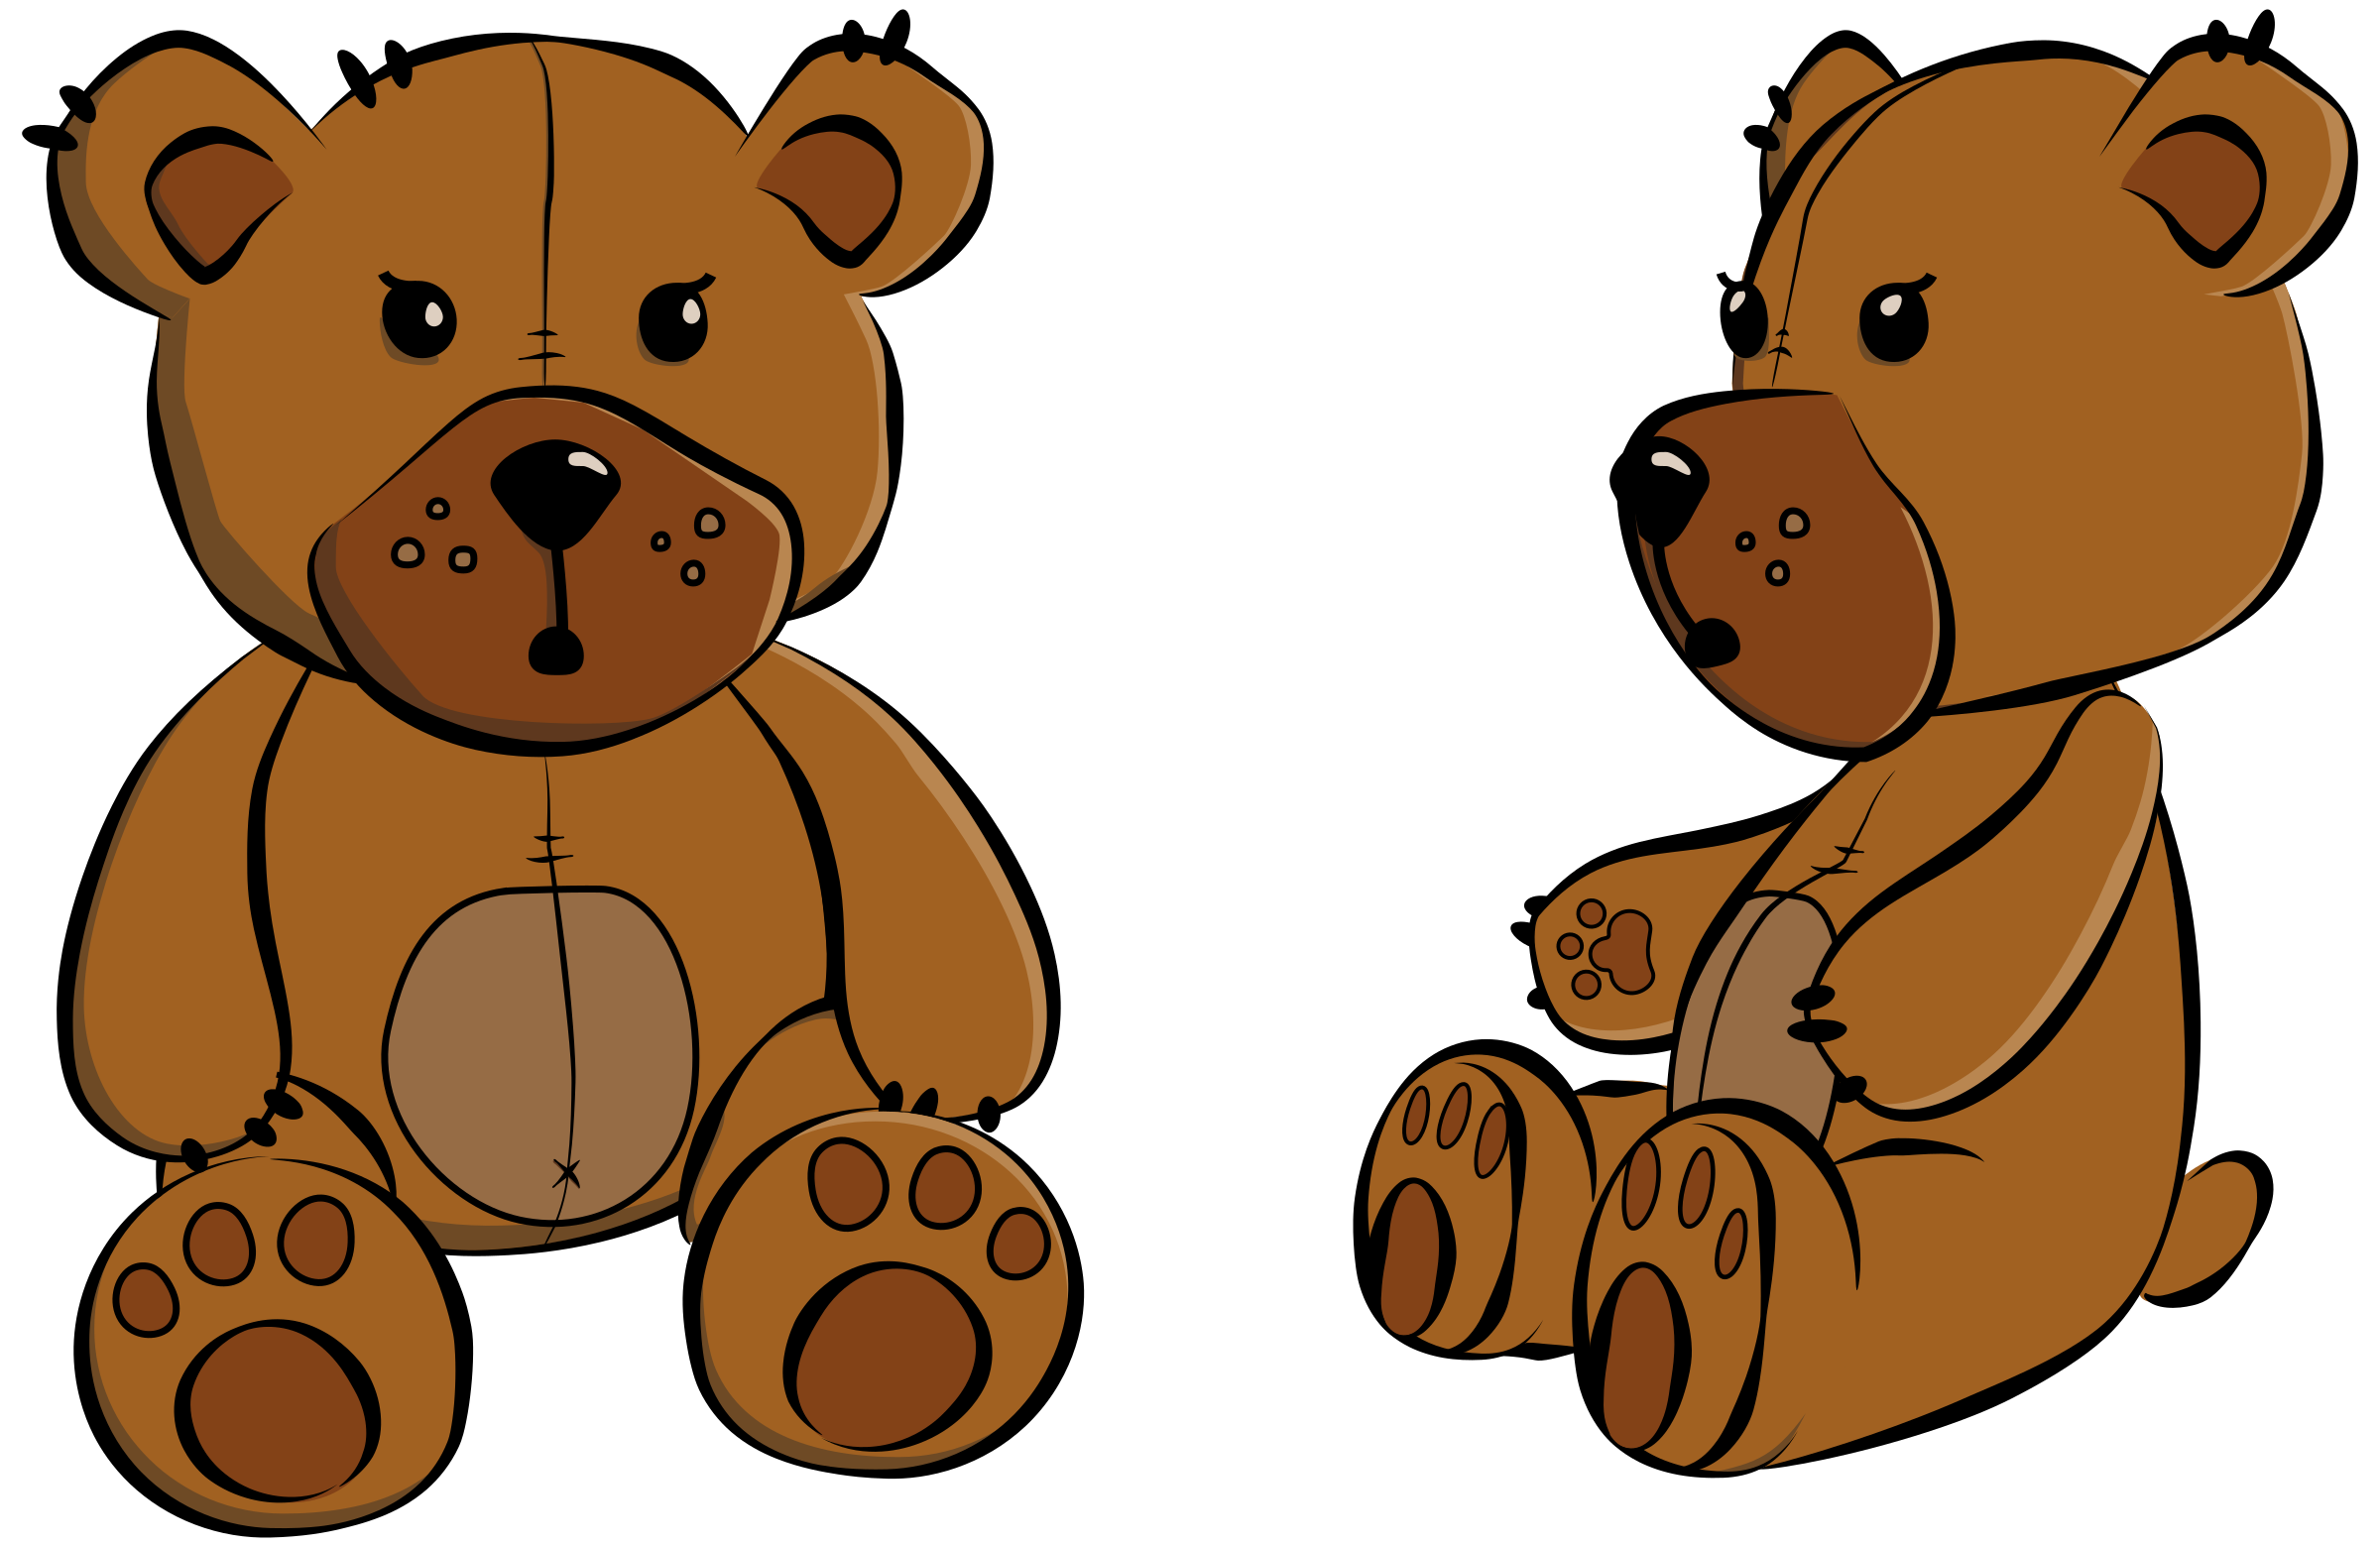 Teddy bear by PrinterKiller